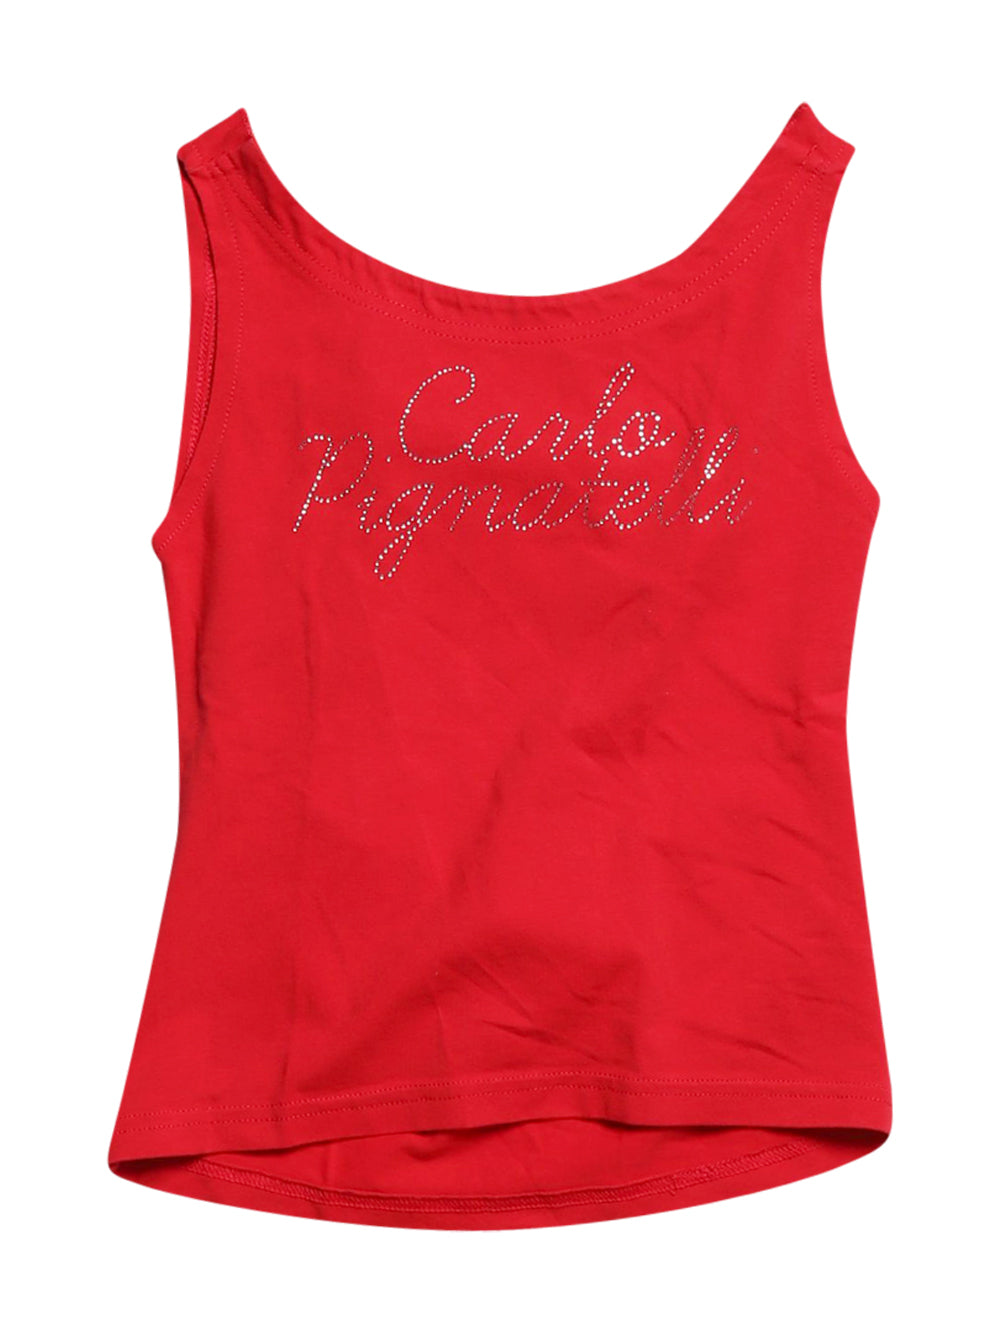 Front photo of Preloved Carlo Pignatelli Red Girl's sleeveless top - size 5-6 yrs